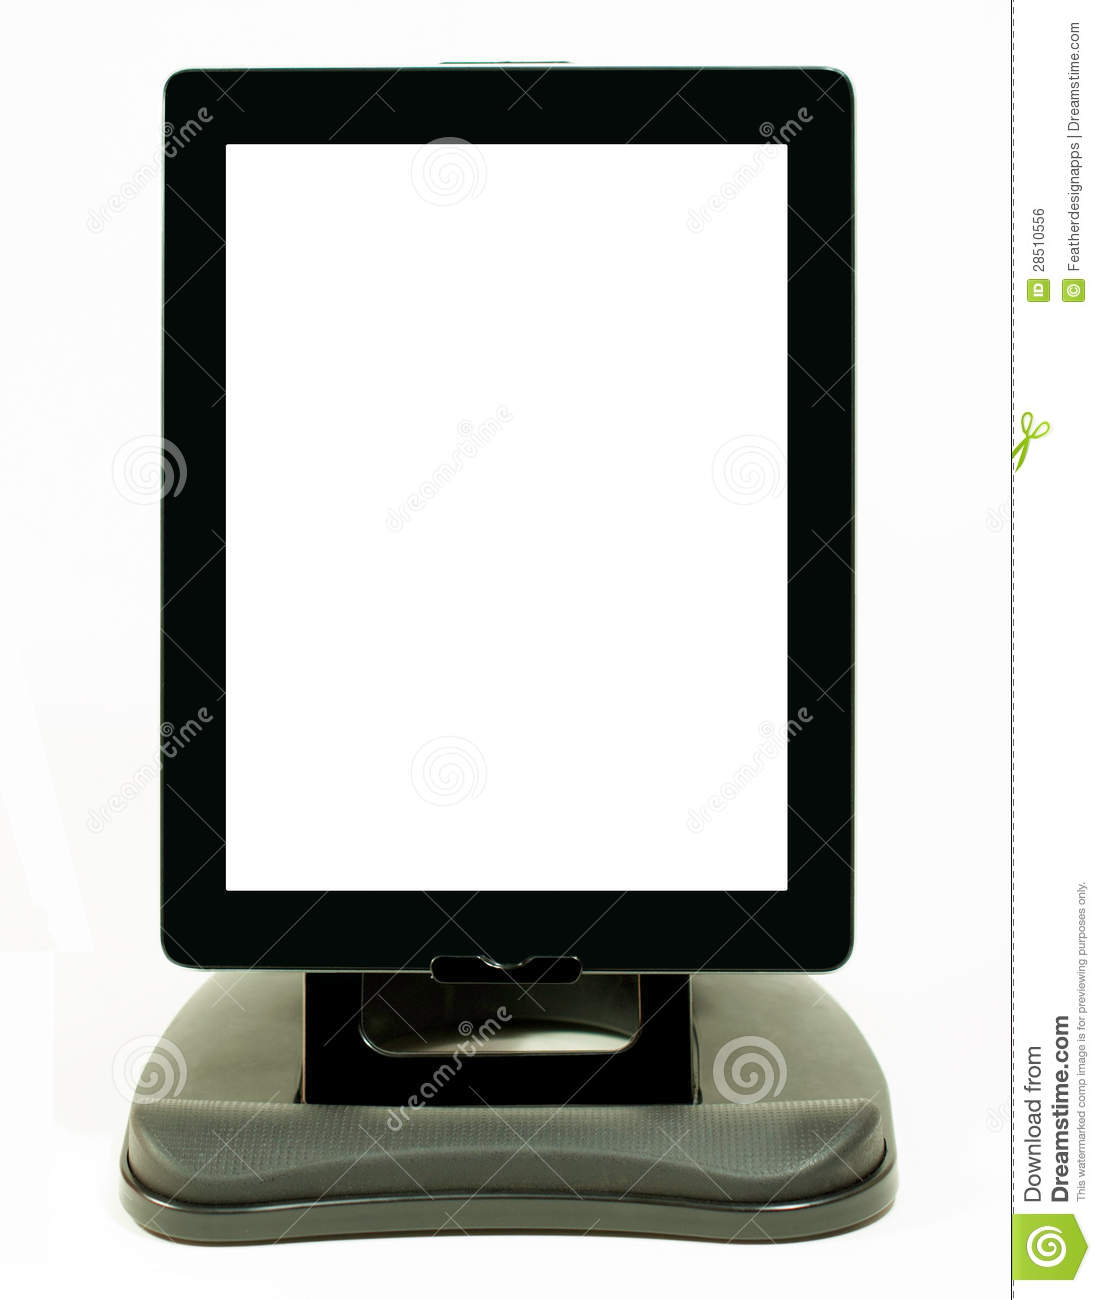 Digital Tablet With Vertical Position On Stand Royalty